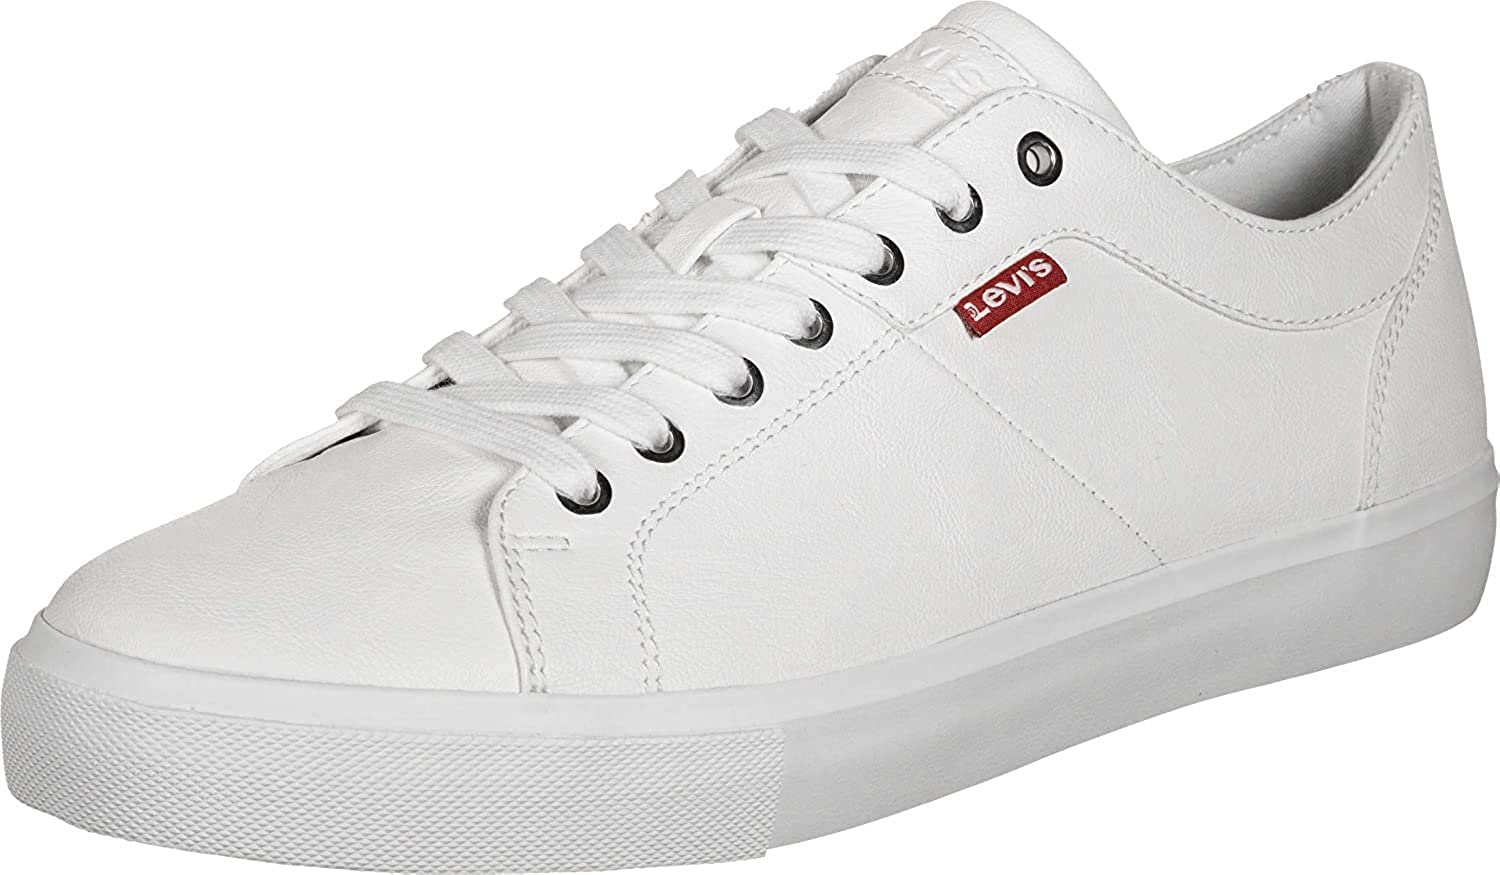 Woodward Leather Trainers, White